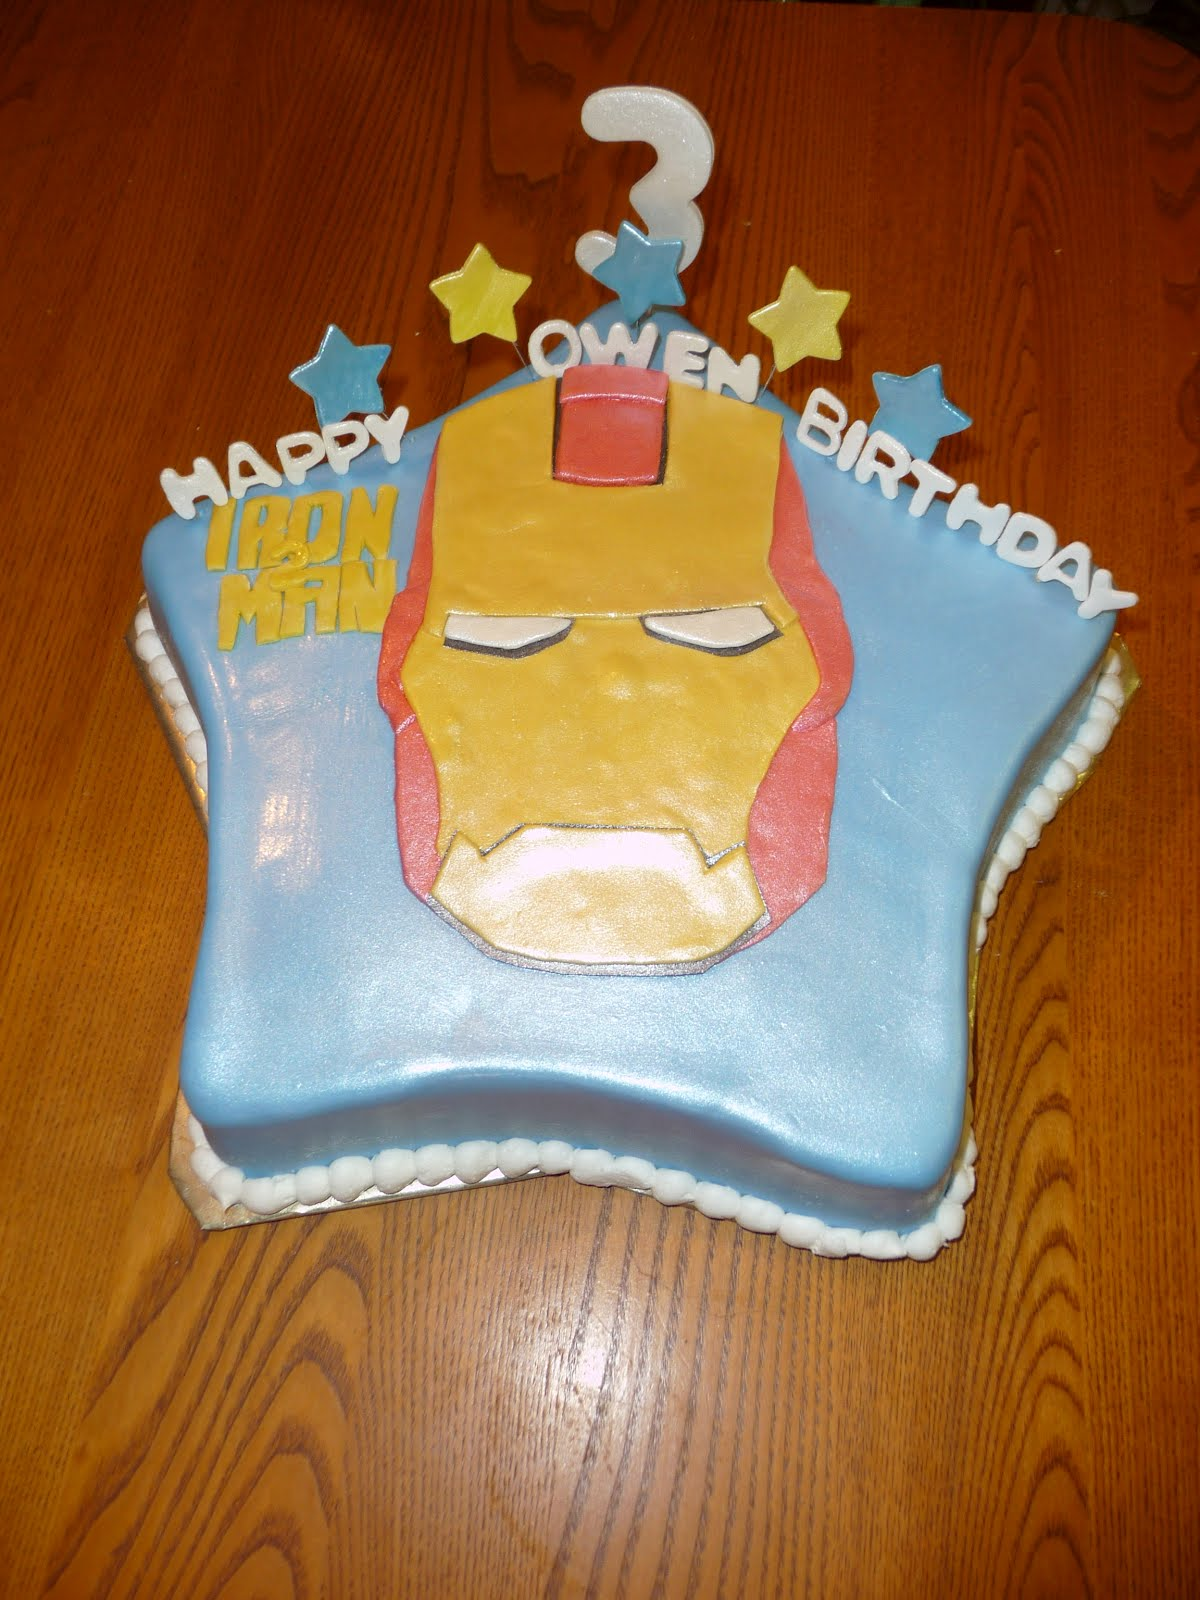 Outstanding Icing On Top Cakes For Every Occasion Iron Man Birthday Cake Birthday Cards Printable Benkemecafe Filternl